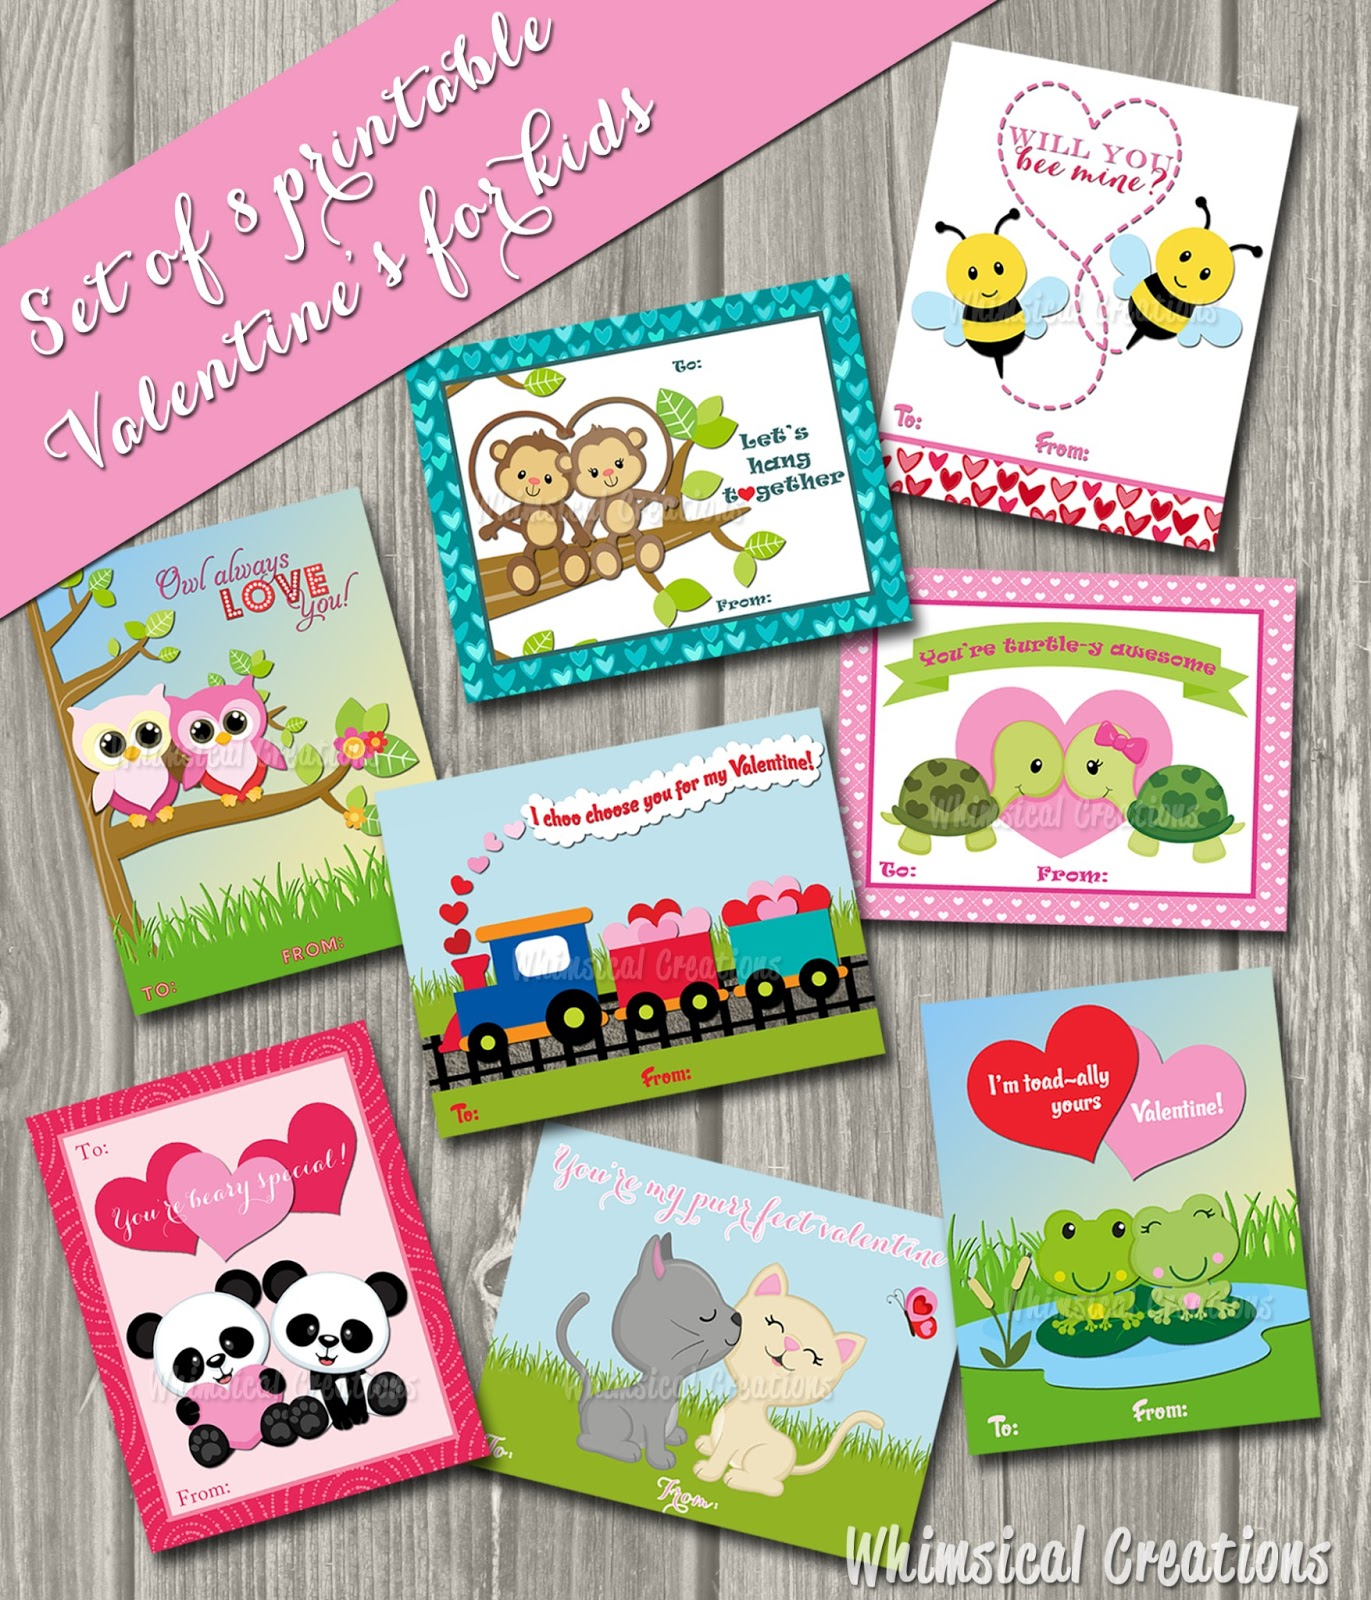 This is a photo of Eloquent Printable Valentine Cards for Kids